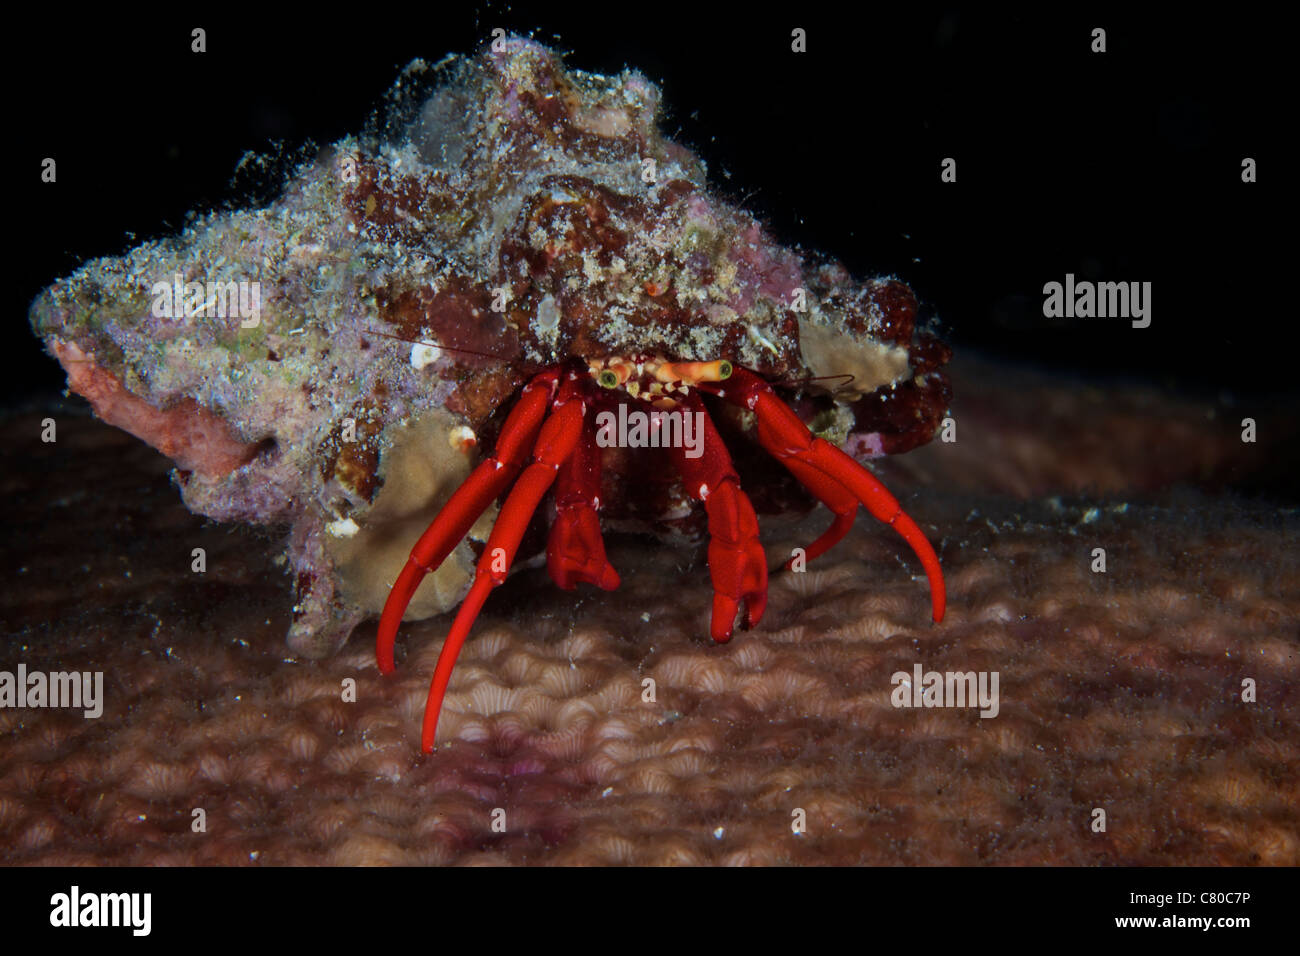 Red Reef Hermit Crab peeks out of its shell, Bonaire, Caribbean Netherlands. - Stock Image